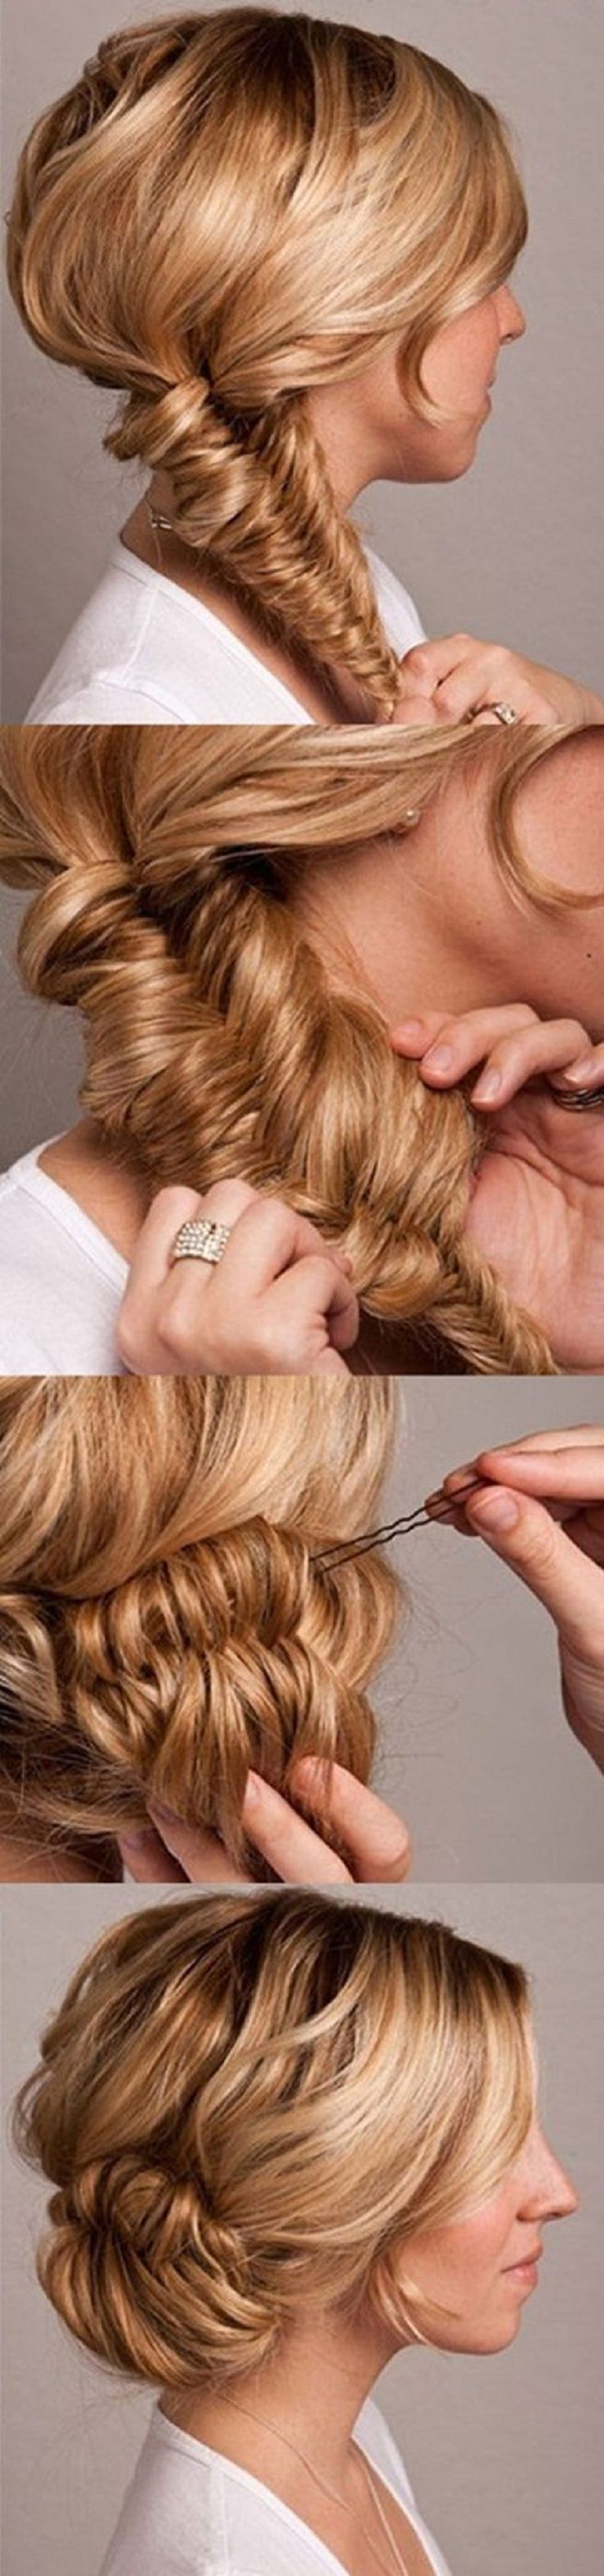 Braided Updos - 21 Lovely French Braid Tutorials For Every Woman | Step By Step ...